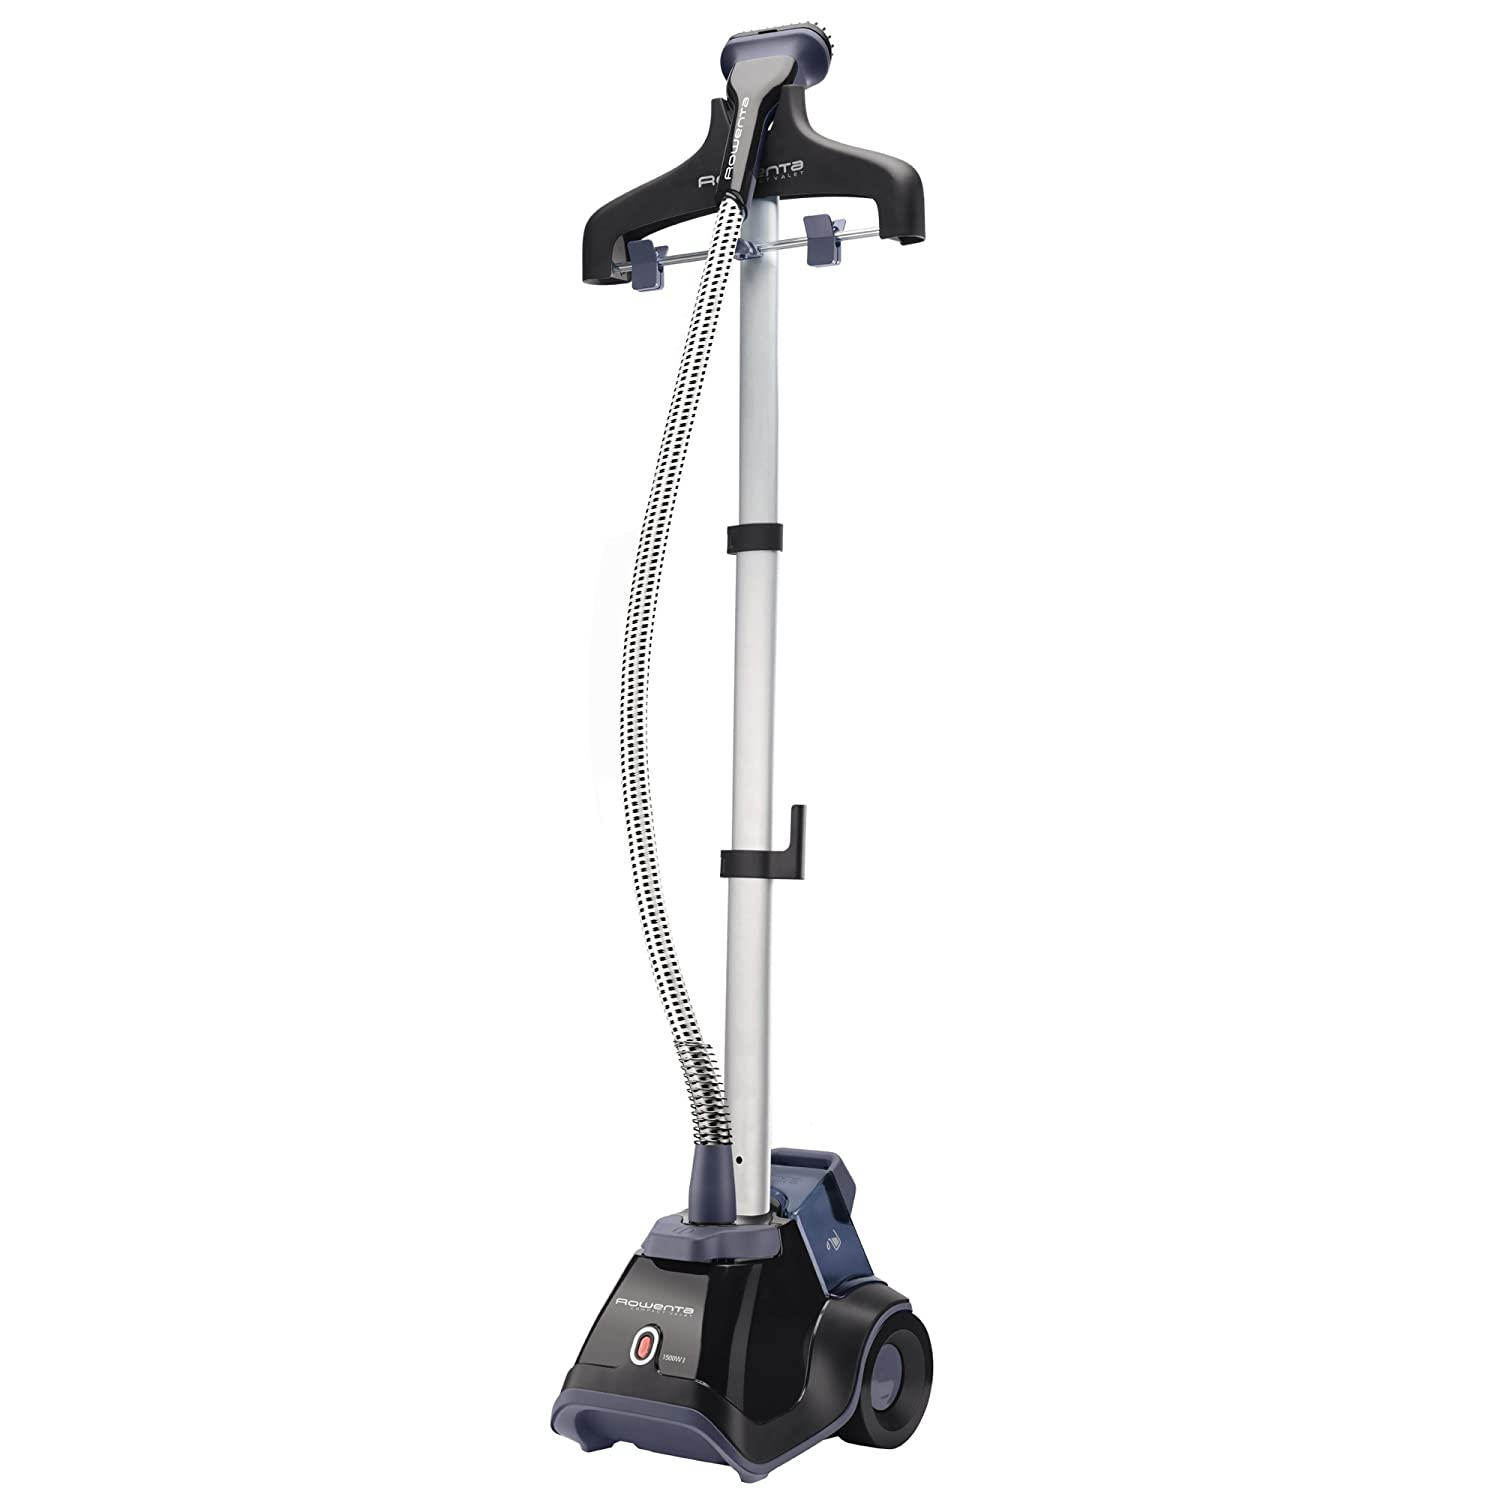 ROWENTA IS6200 1500-Watt Full Size Garment Steamer IS6200D1